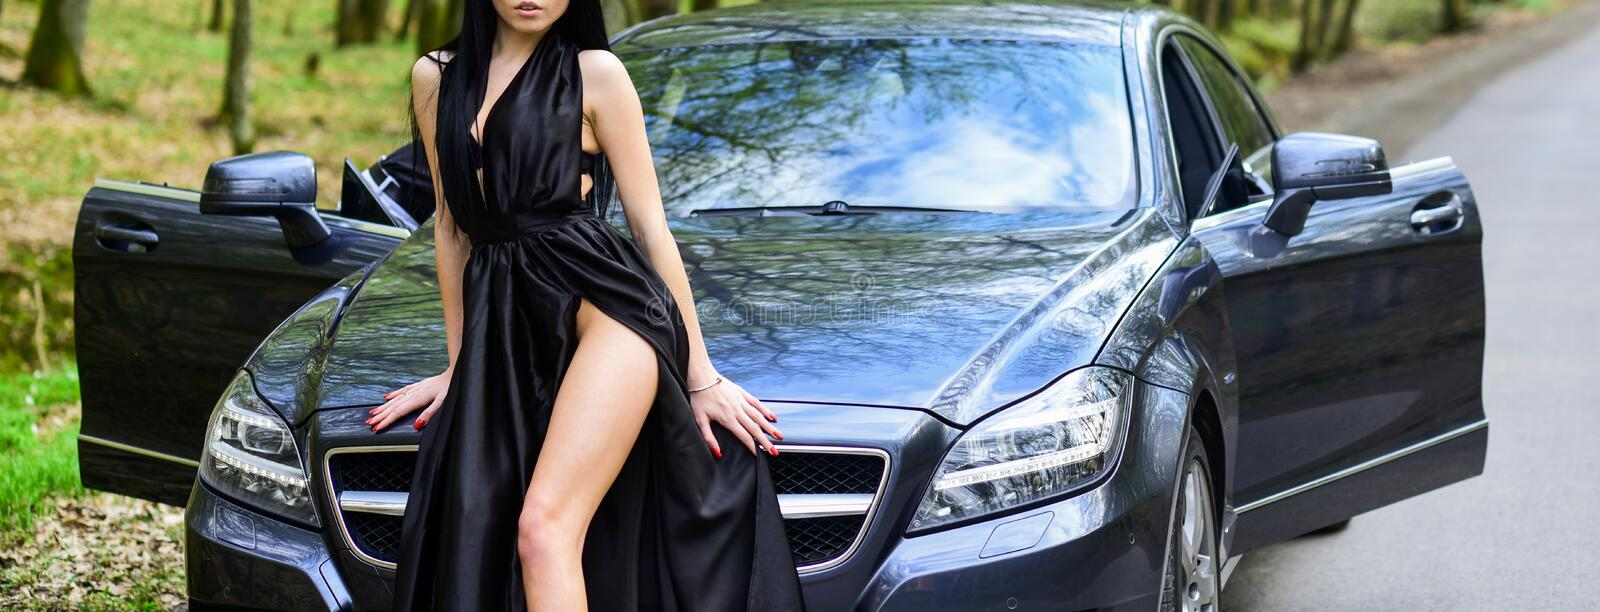 Seductive pose. Sex in car. Driver girl. Beauty and fashion. Woman in black dress escort service worker. Sexy girl. Elegant dress and auto. Provocative concept stock image